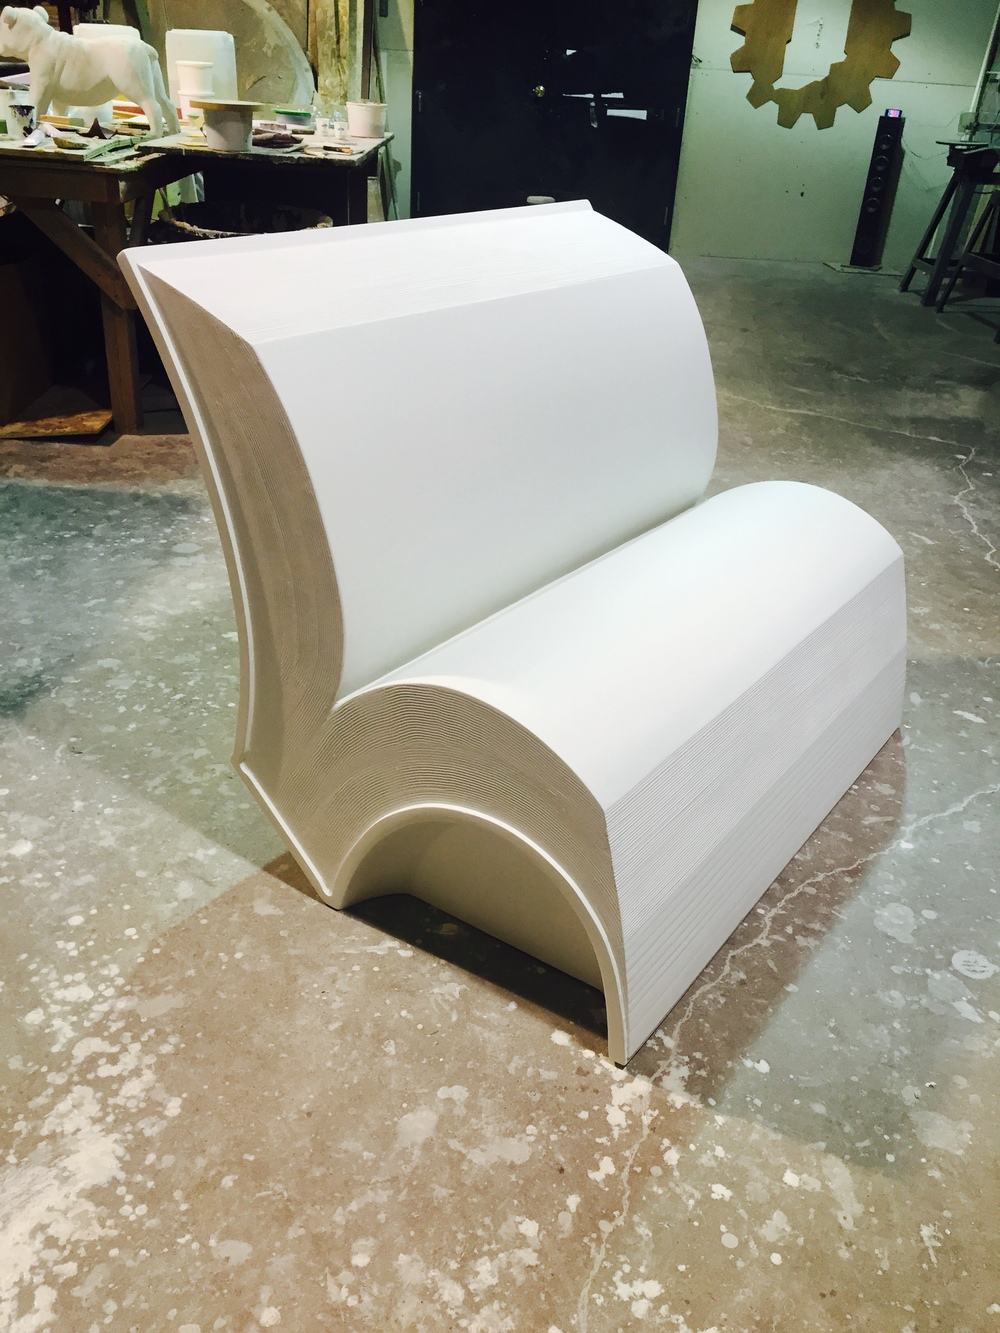 chicago fiberglass works